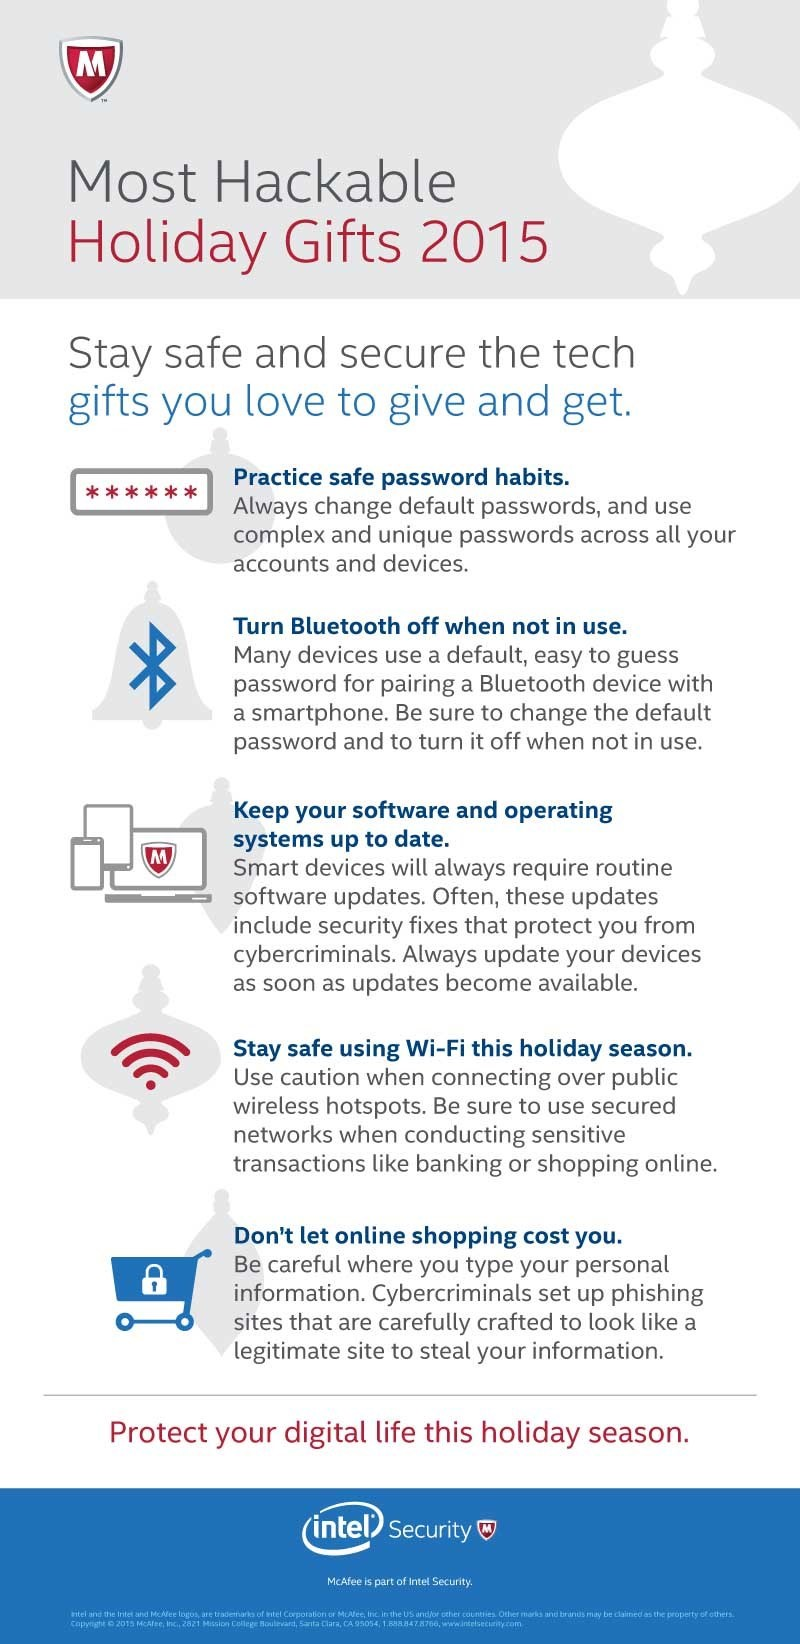 INTEL SECURITY- Hackable Holiday Gifts 2015